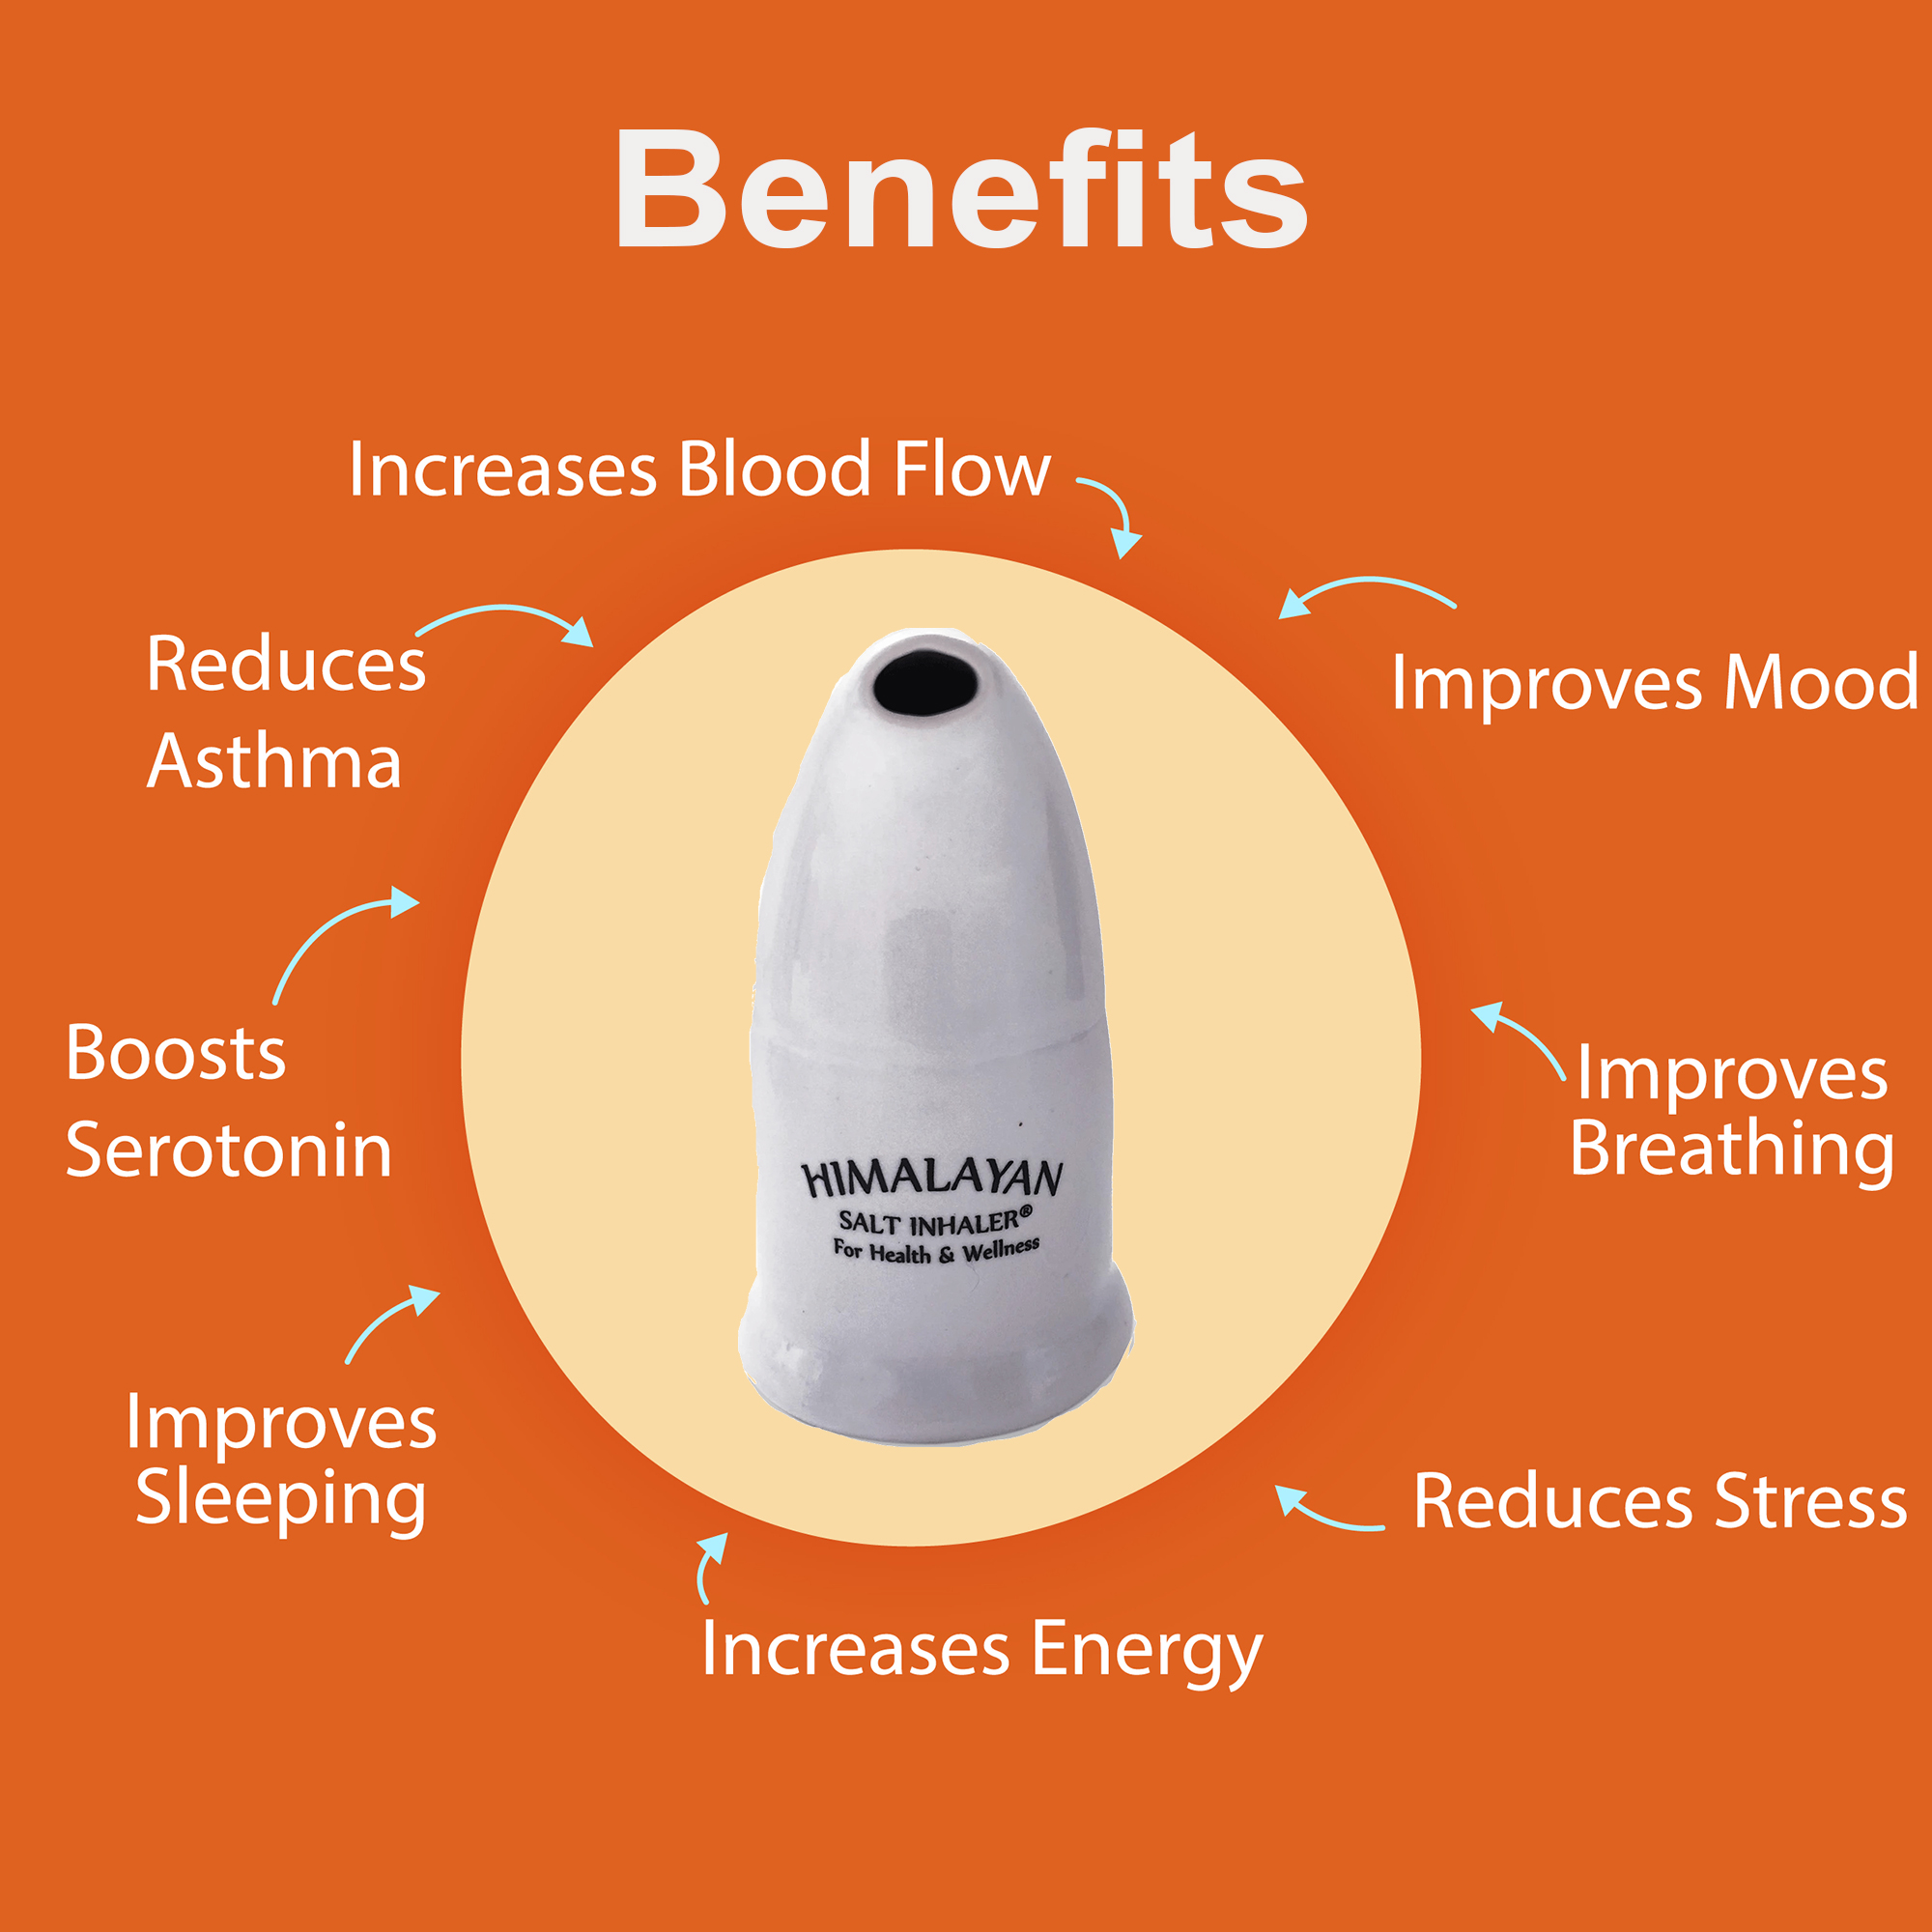 7 benefits 85 - Saltpur Himalayan Salts